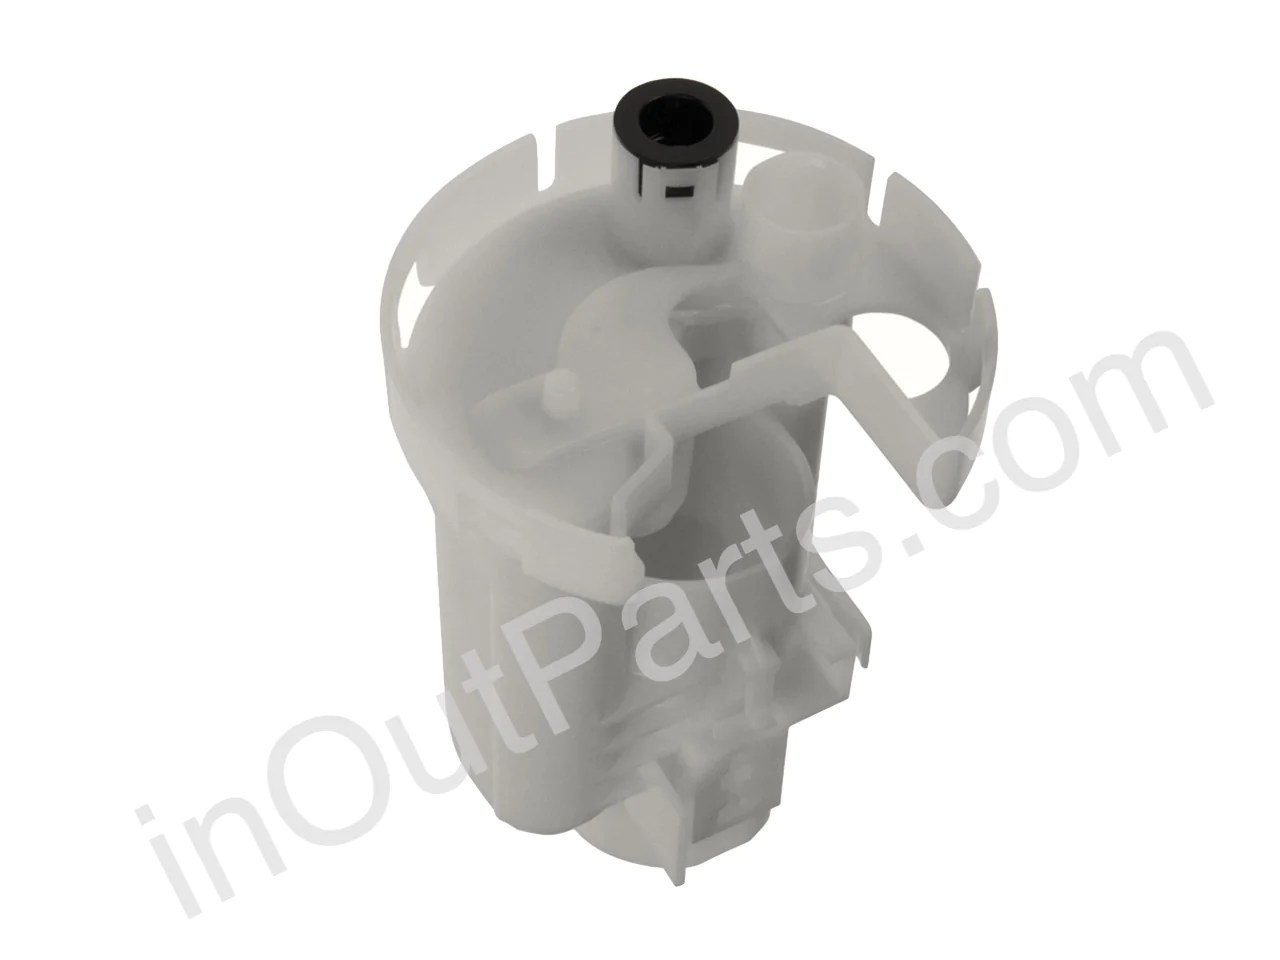 small resolution of fuel filter fits lexus is200 is300 gs300 gs400 rx es300